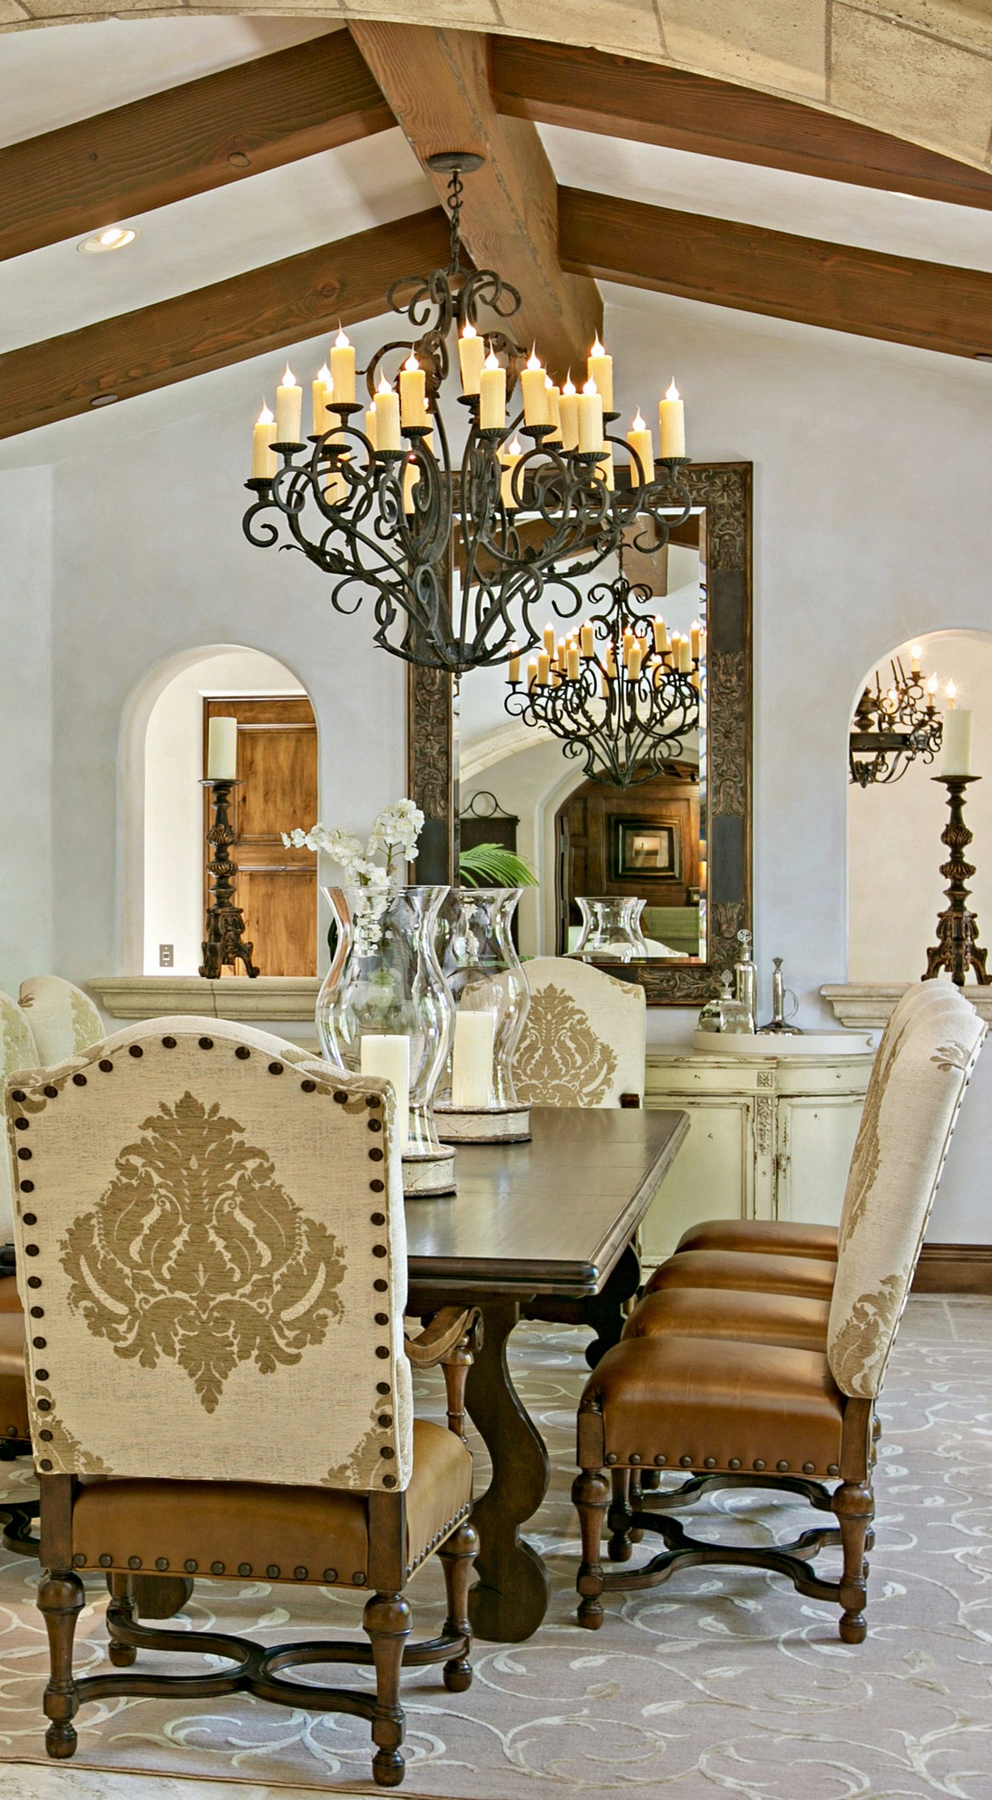 From Scandinavian Design To Art Deco There Are Appropriately Many Interior Decorating Styles To In 2020 Tuscan Dining Rooms Mediterranean Home Decor Tuscan Decorating